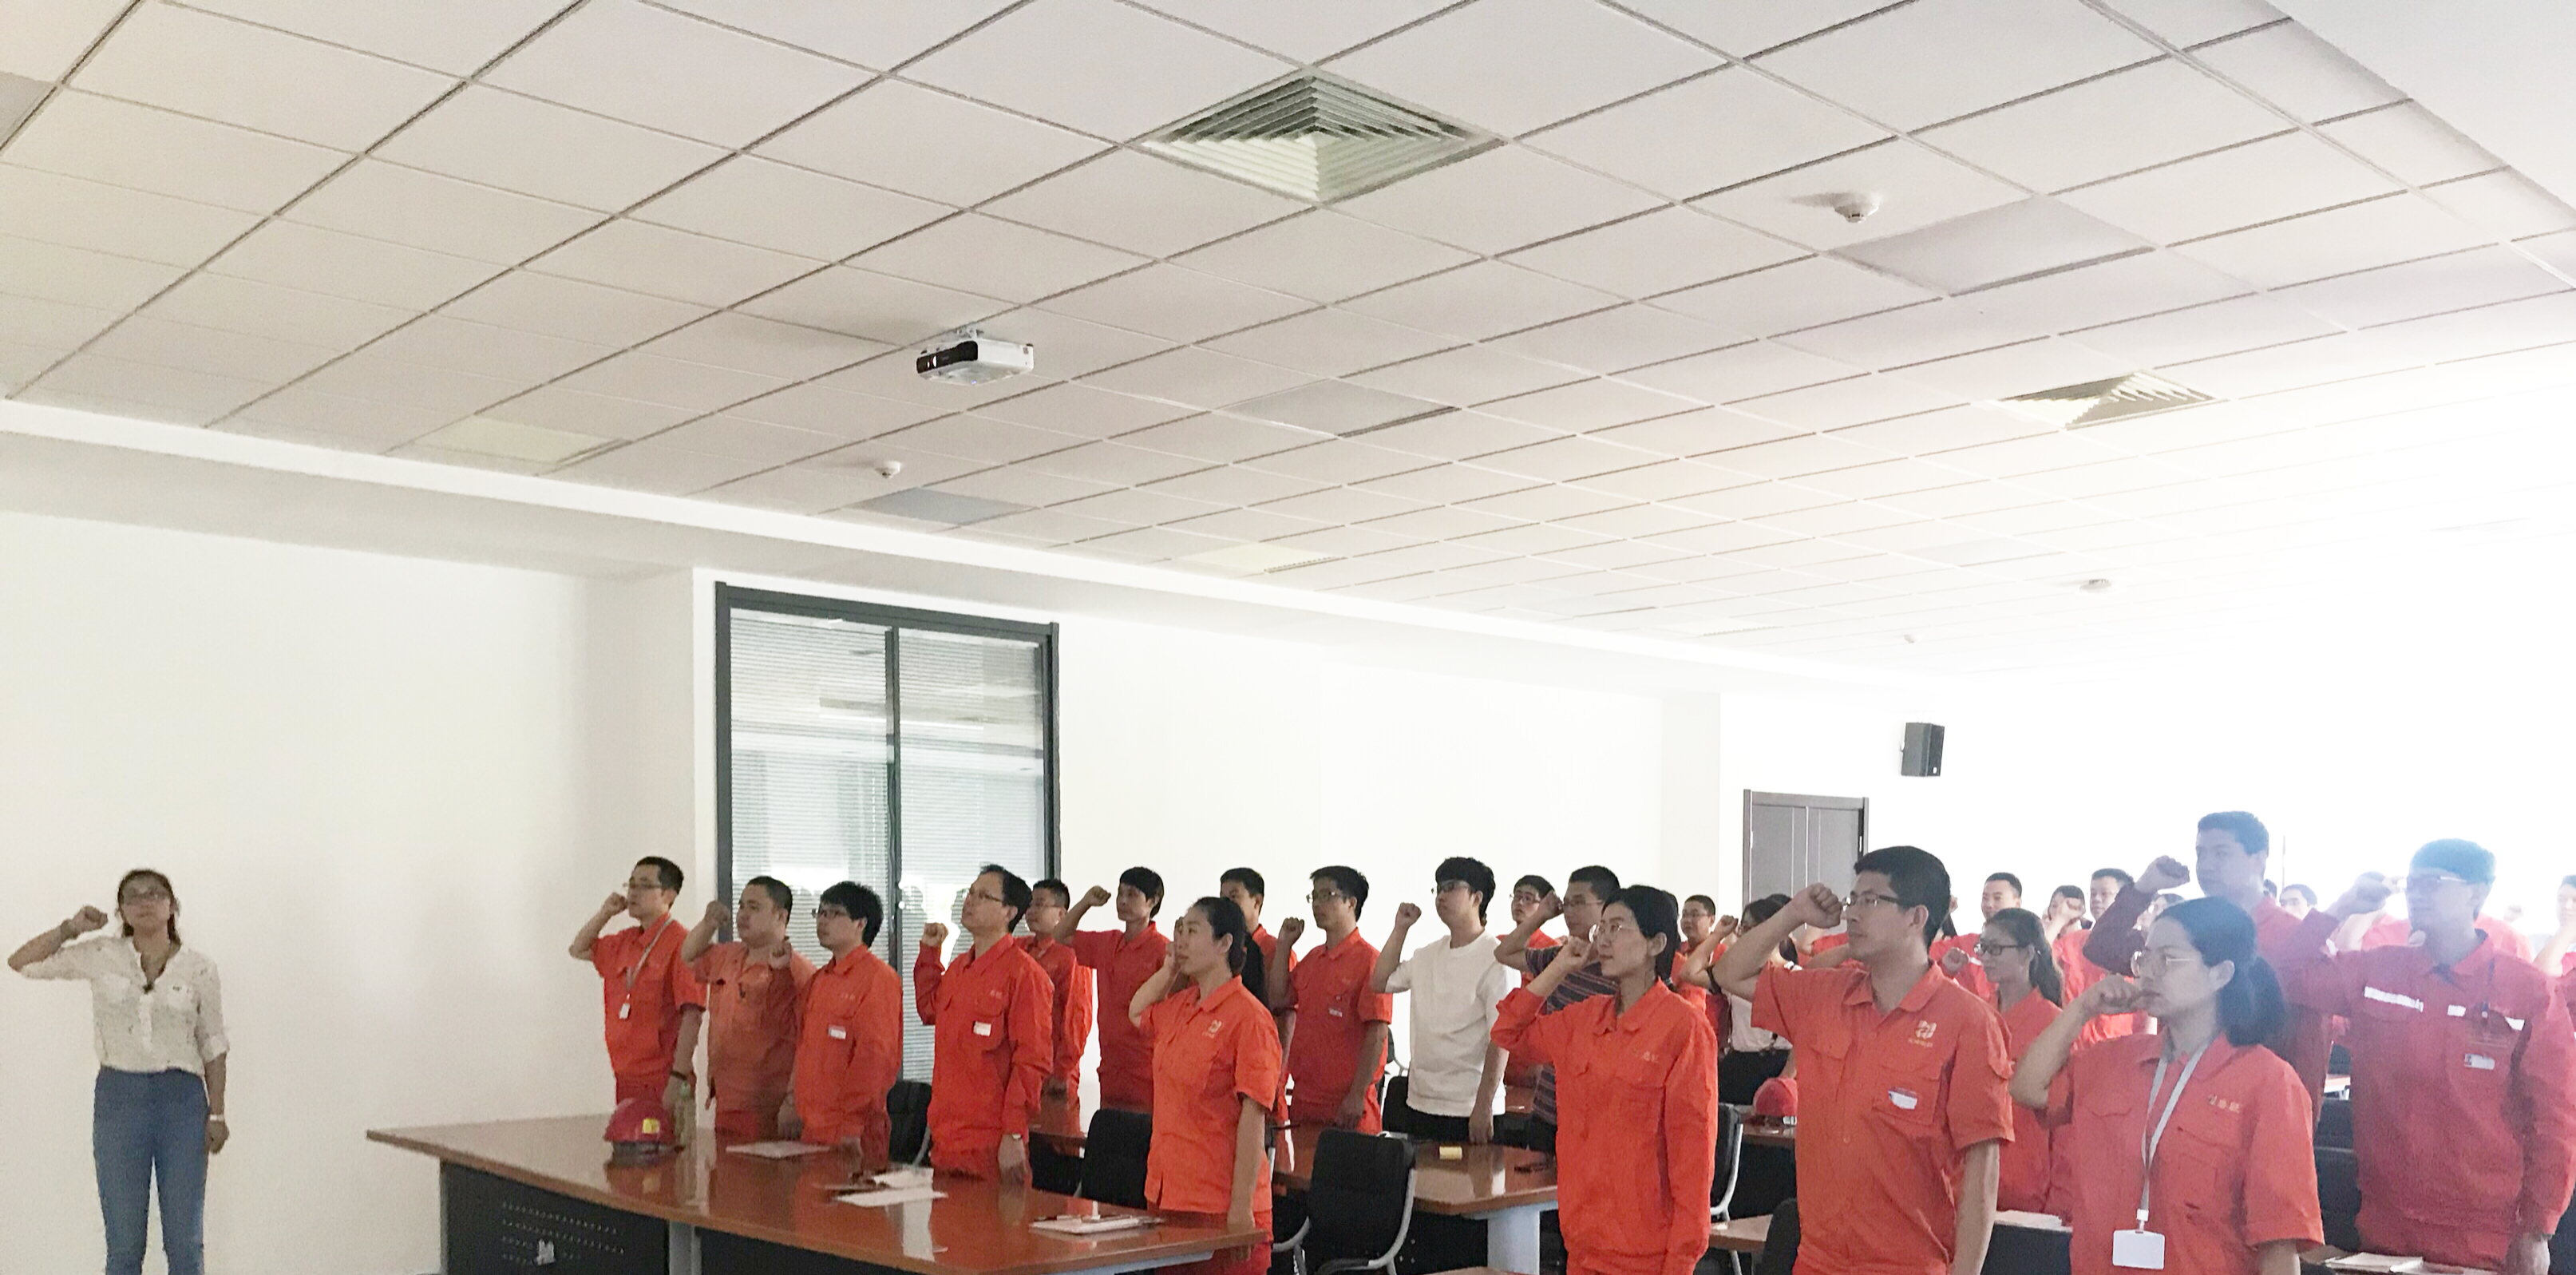 The general party branch of the company organized the theme party day activity of